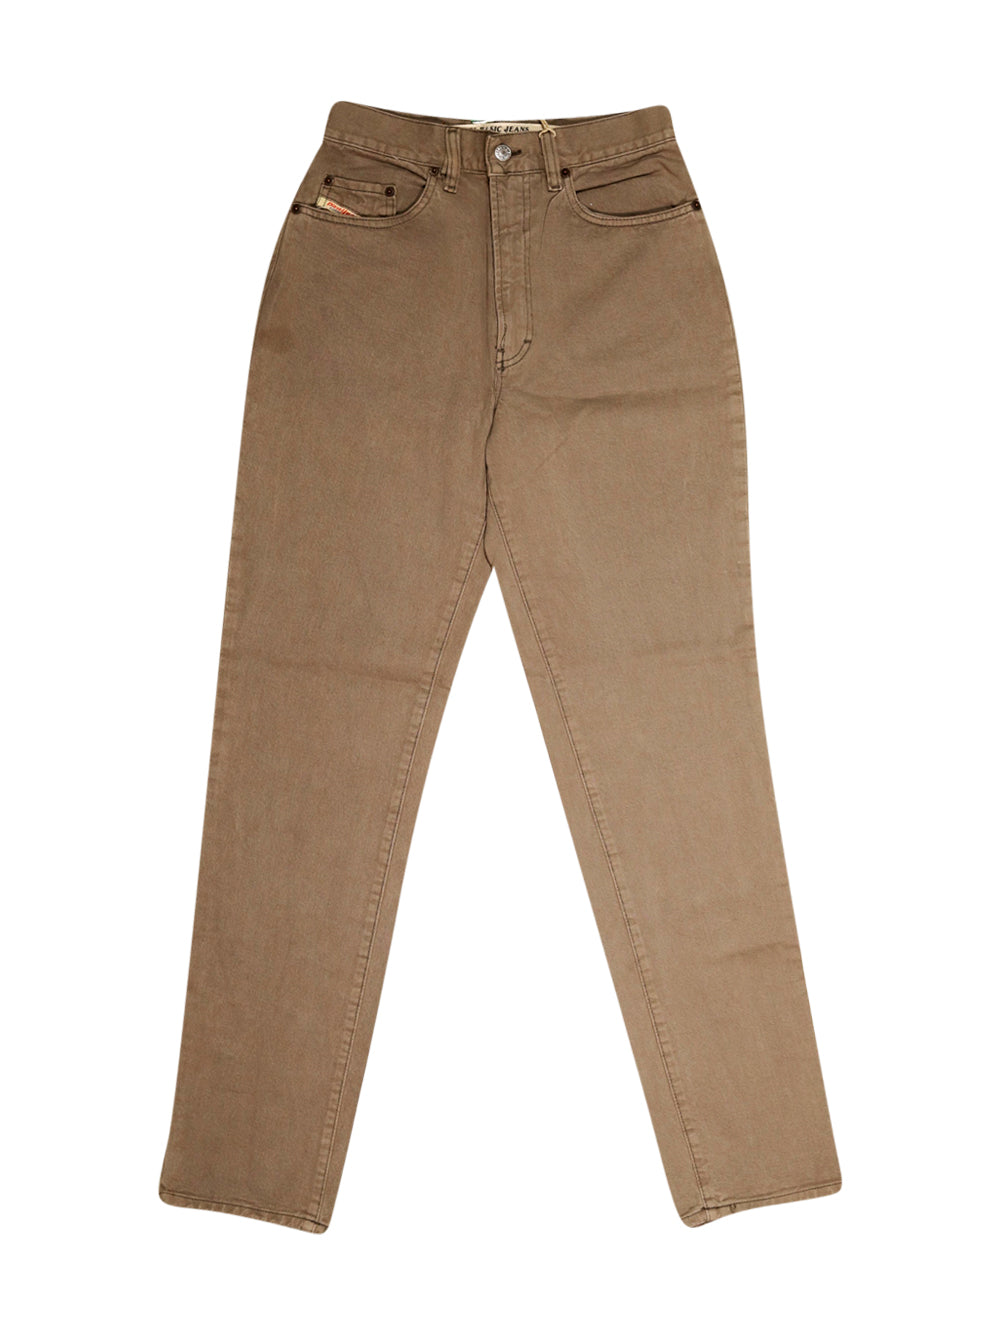 Front photo of Preloved Diesel Beige Man's trousers - size 34/XS